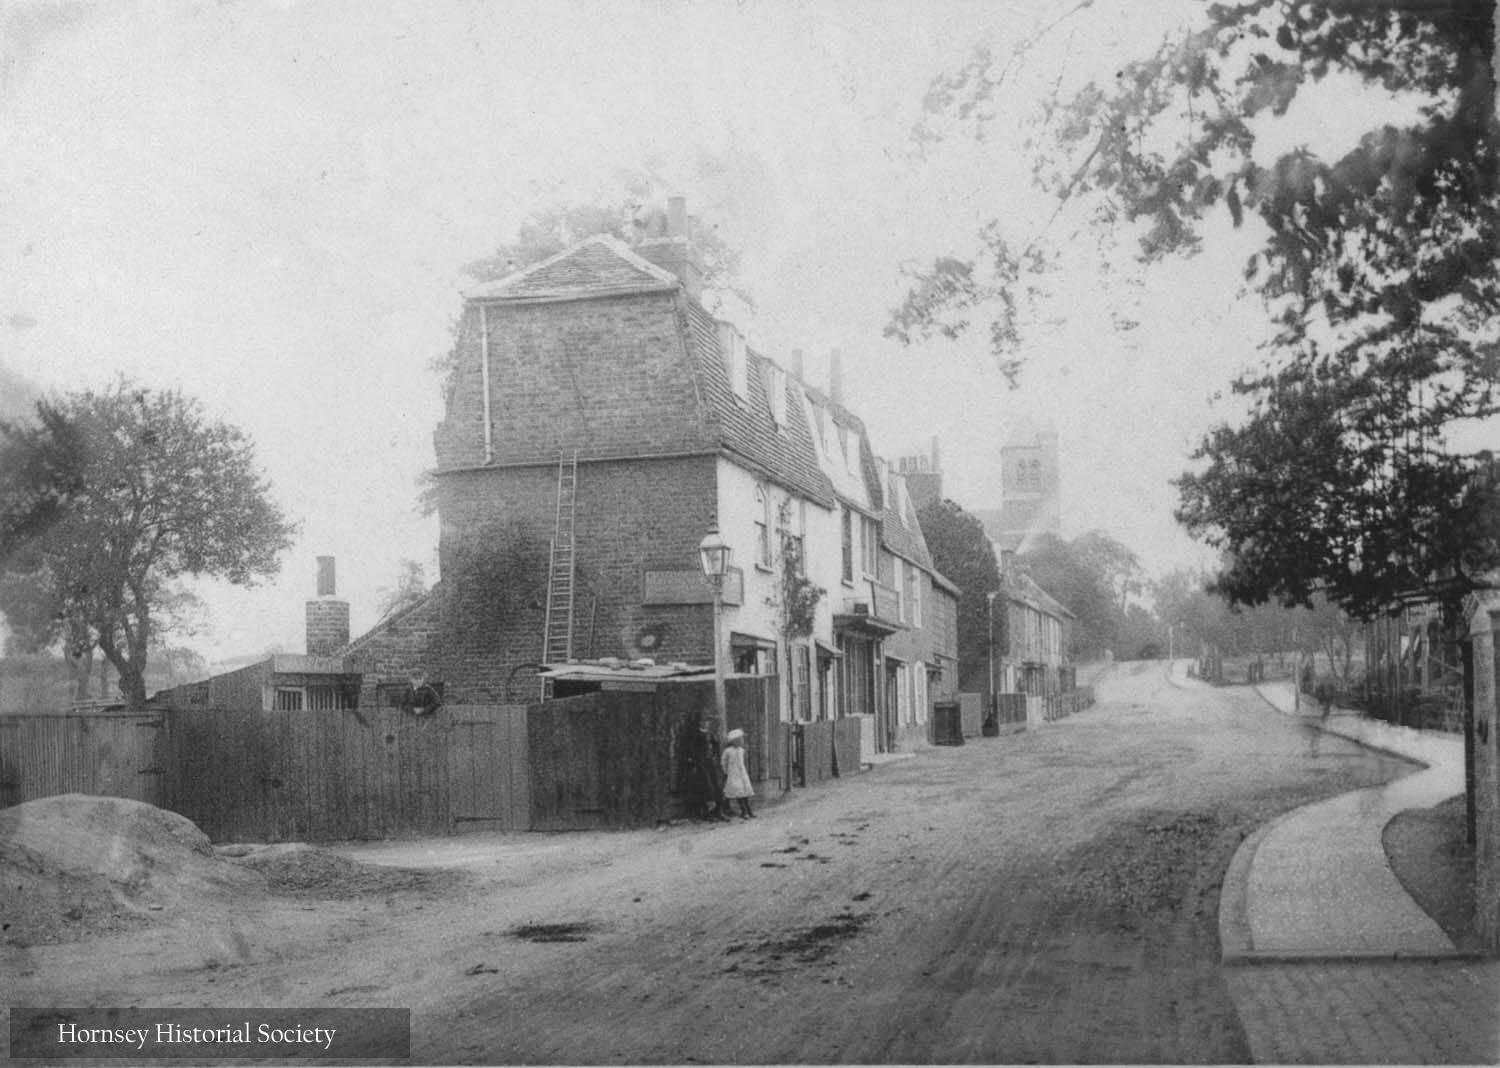 Manor Cottages, Manor Place Tottenham Lane Crouch End circa 1894